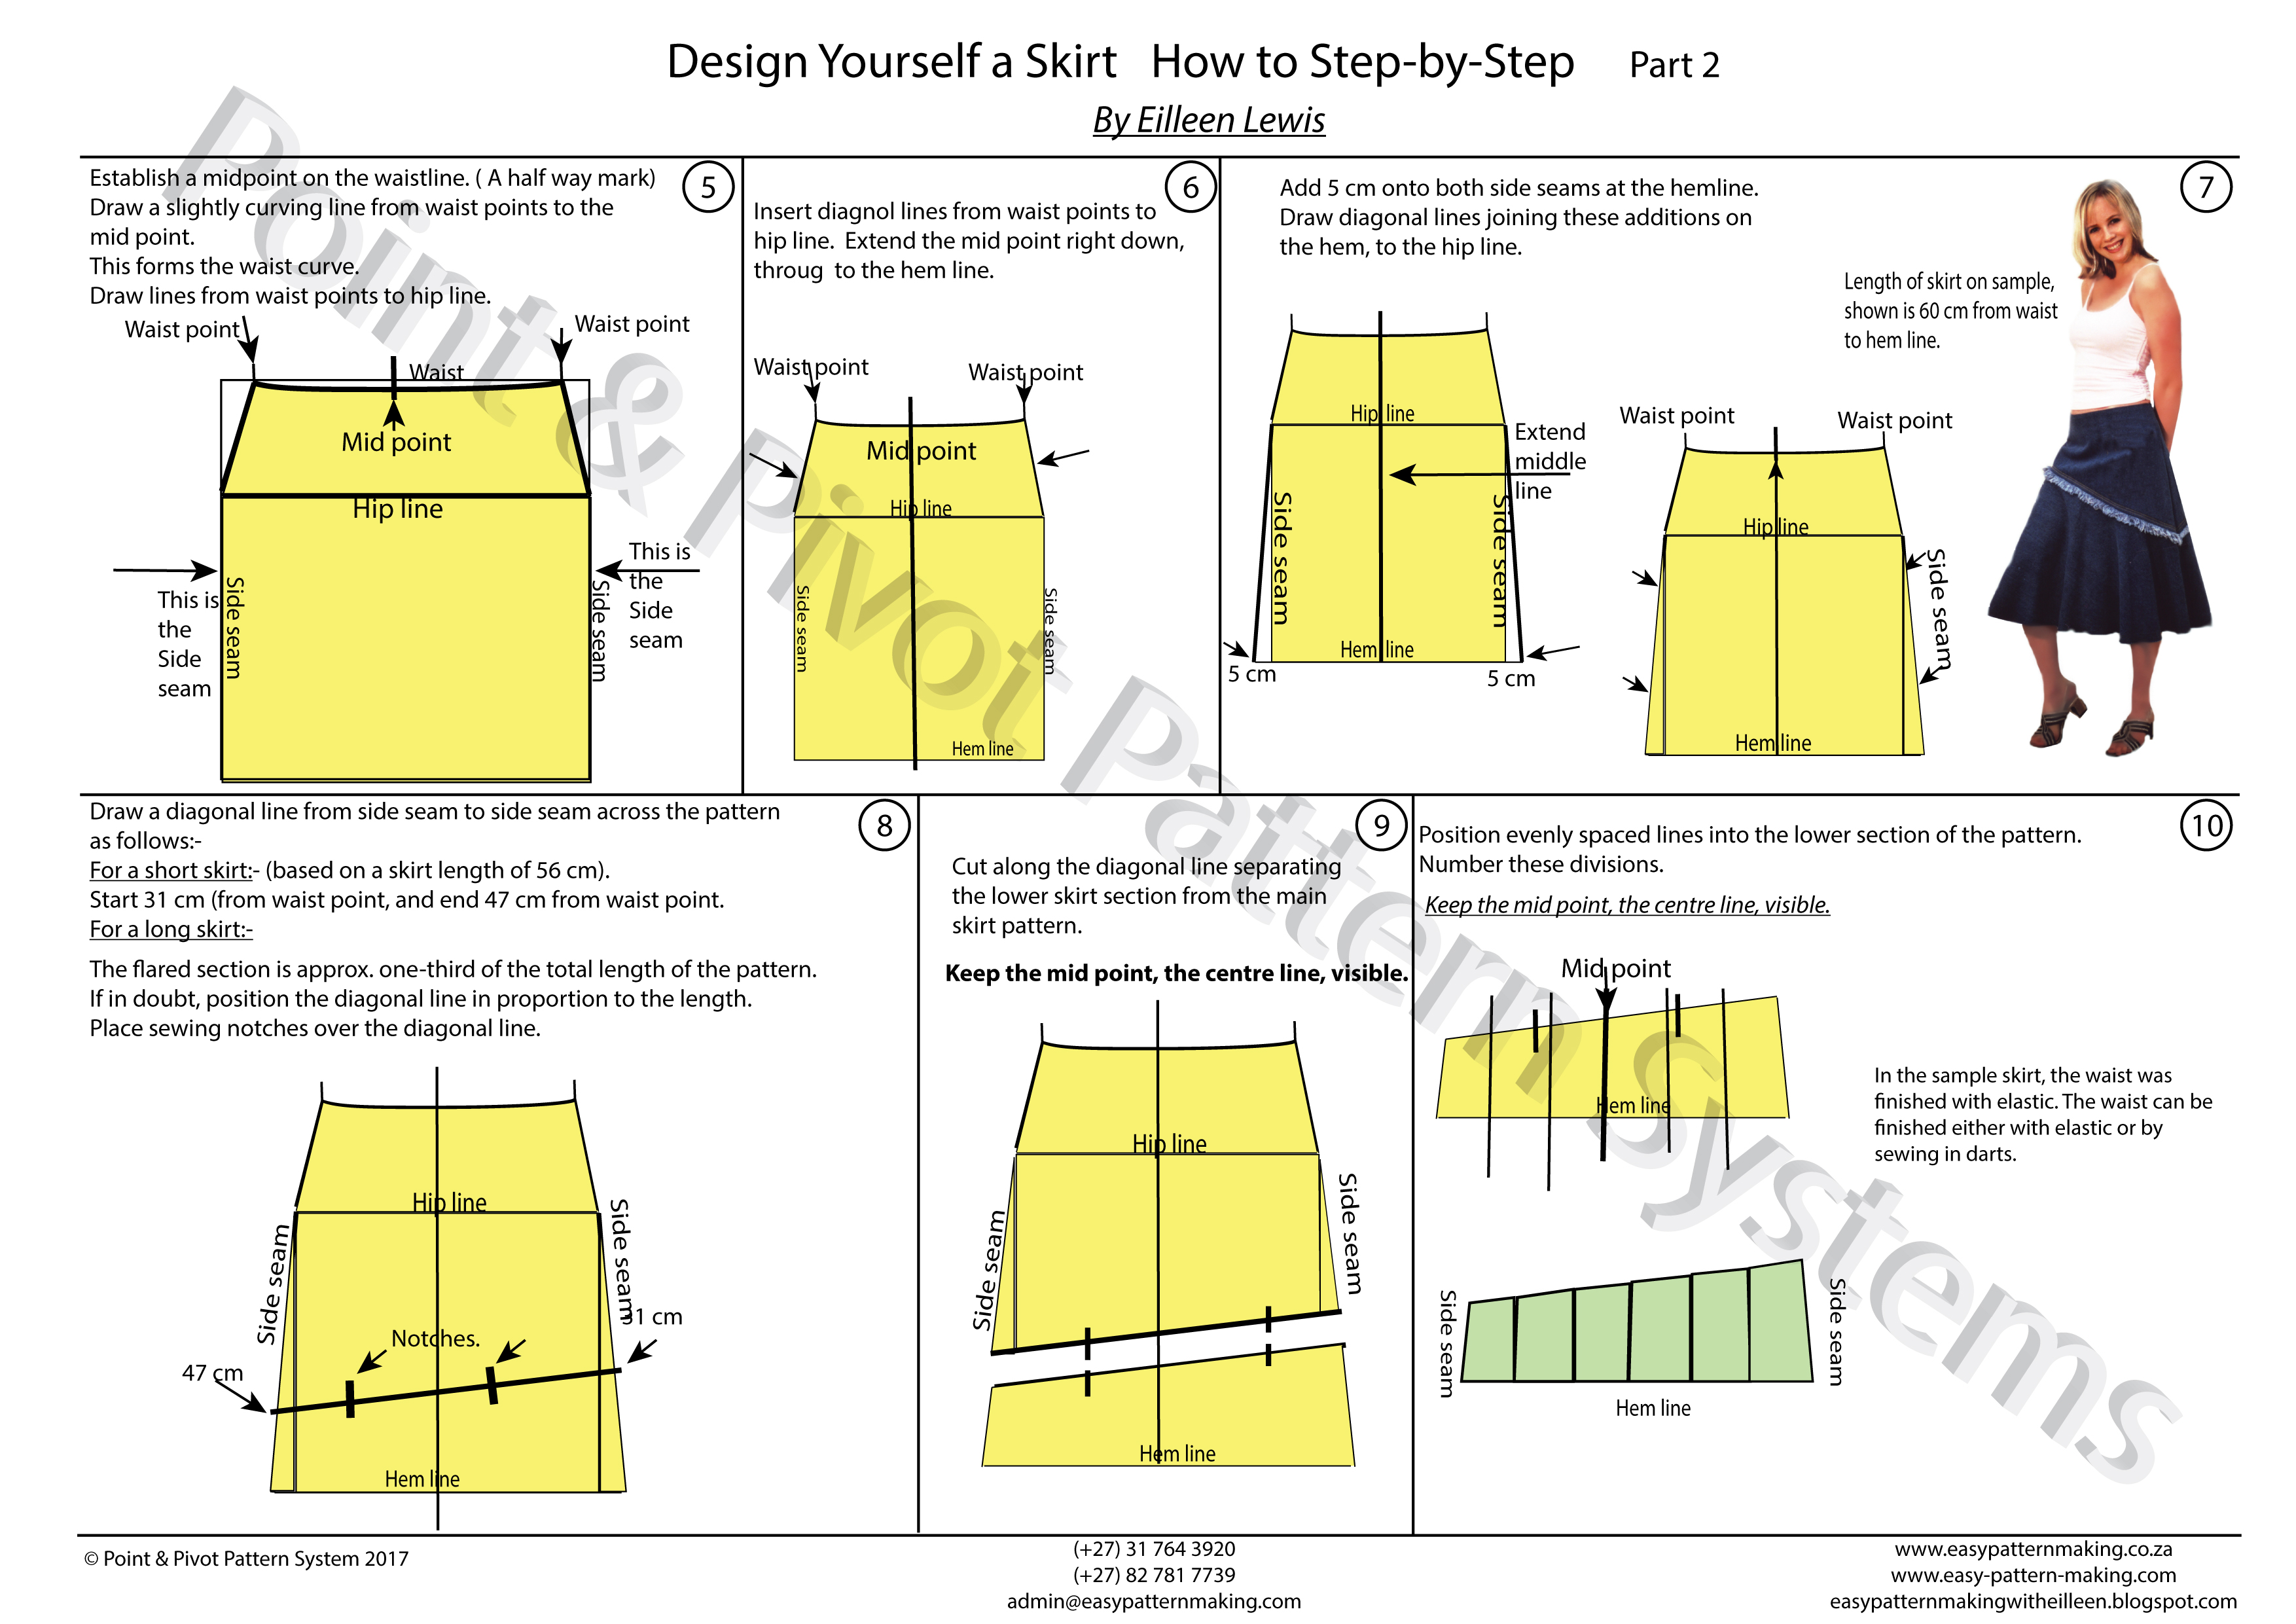 Pattern Techniques – How To Design A Skirt Part 2